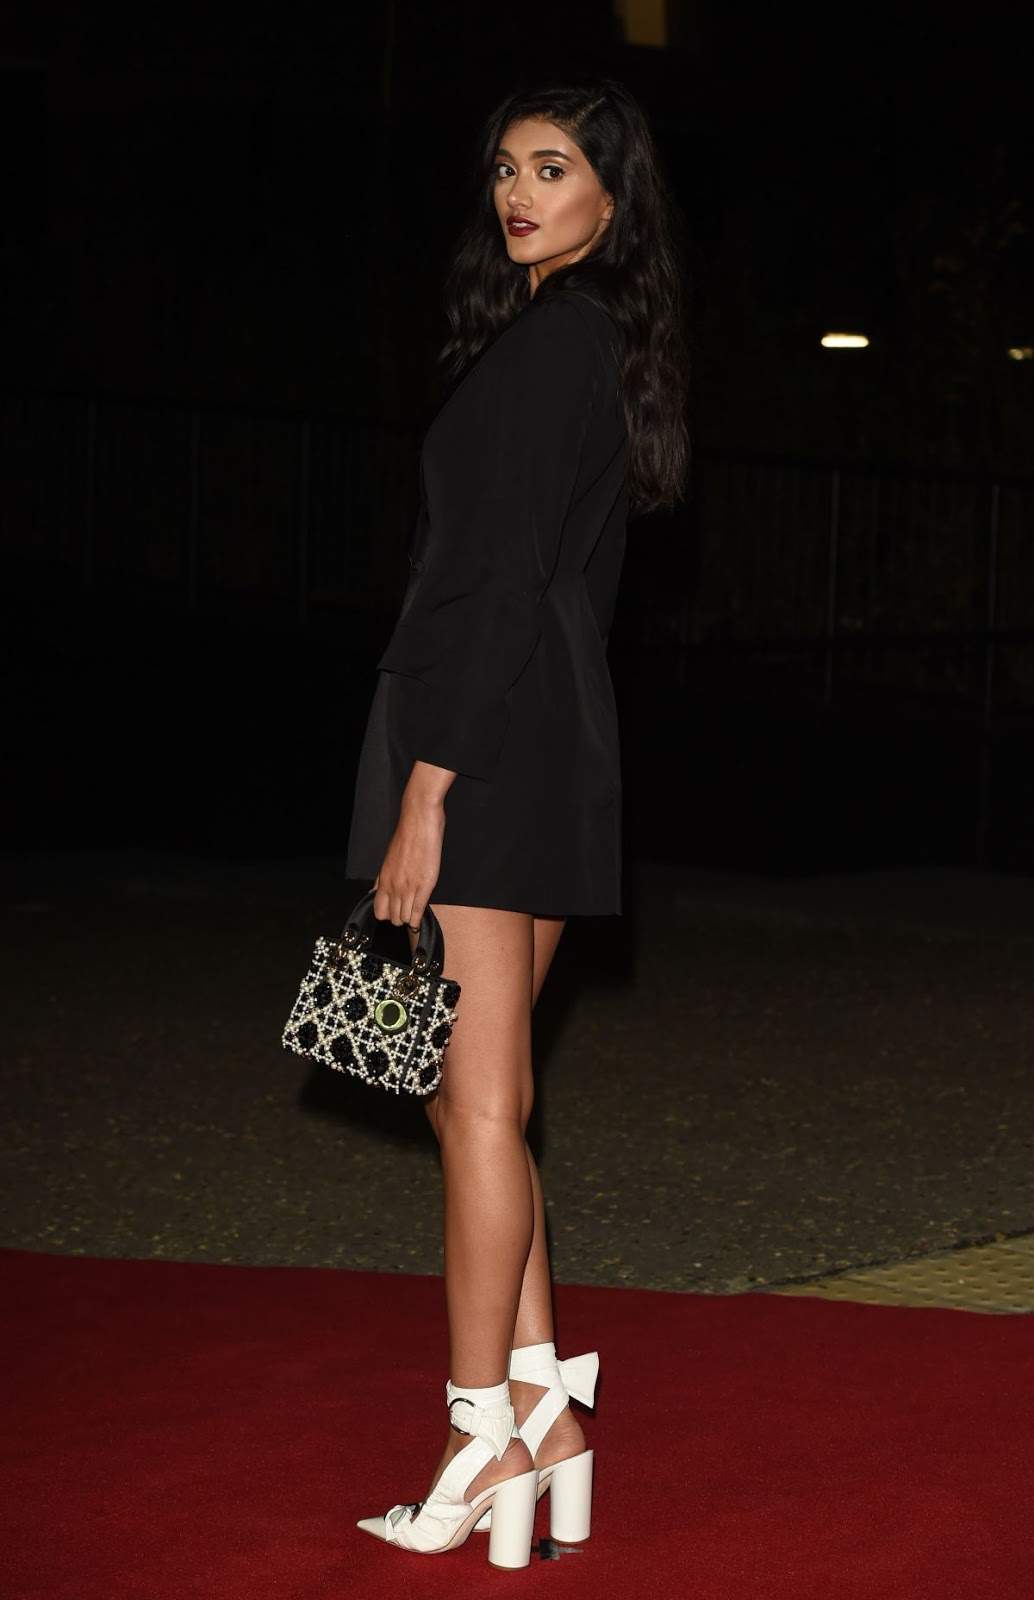 Photos of Neelam Gill At Gq Men Of The Year Awards 2016 In London